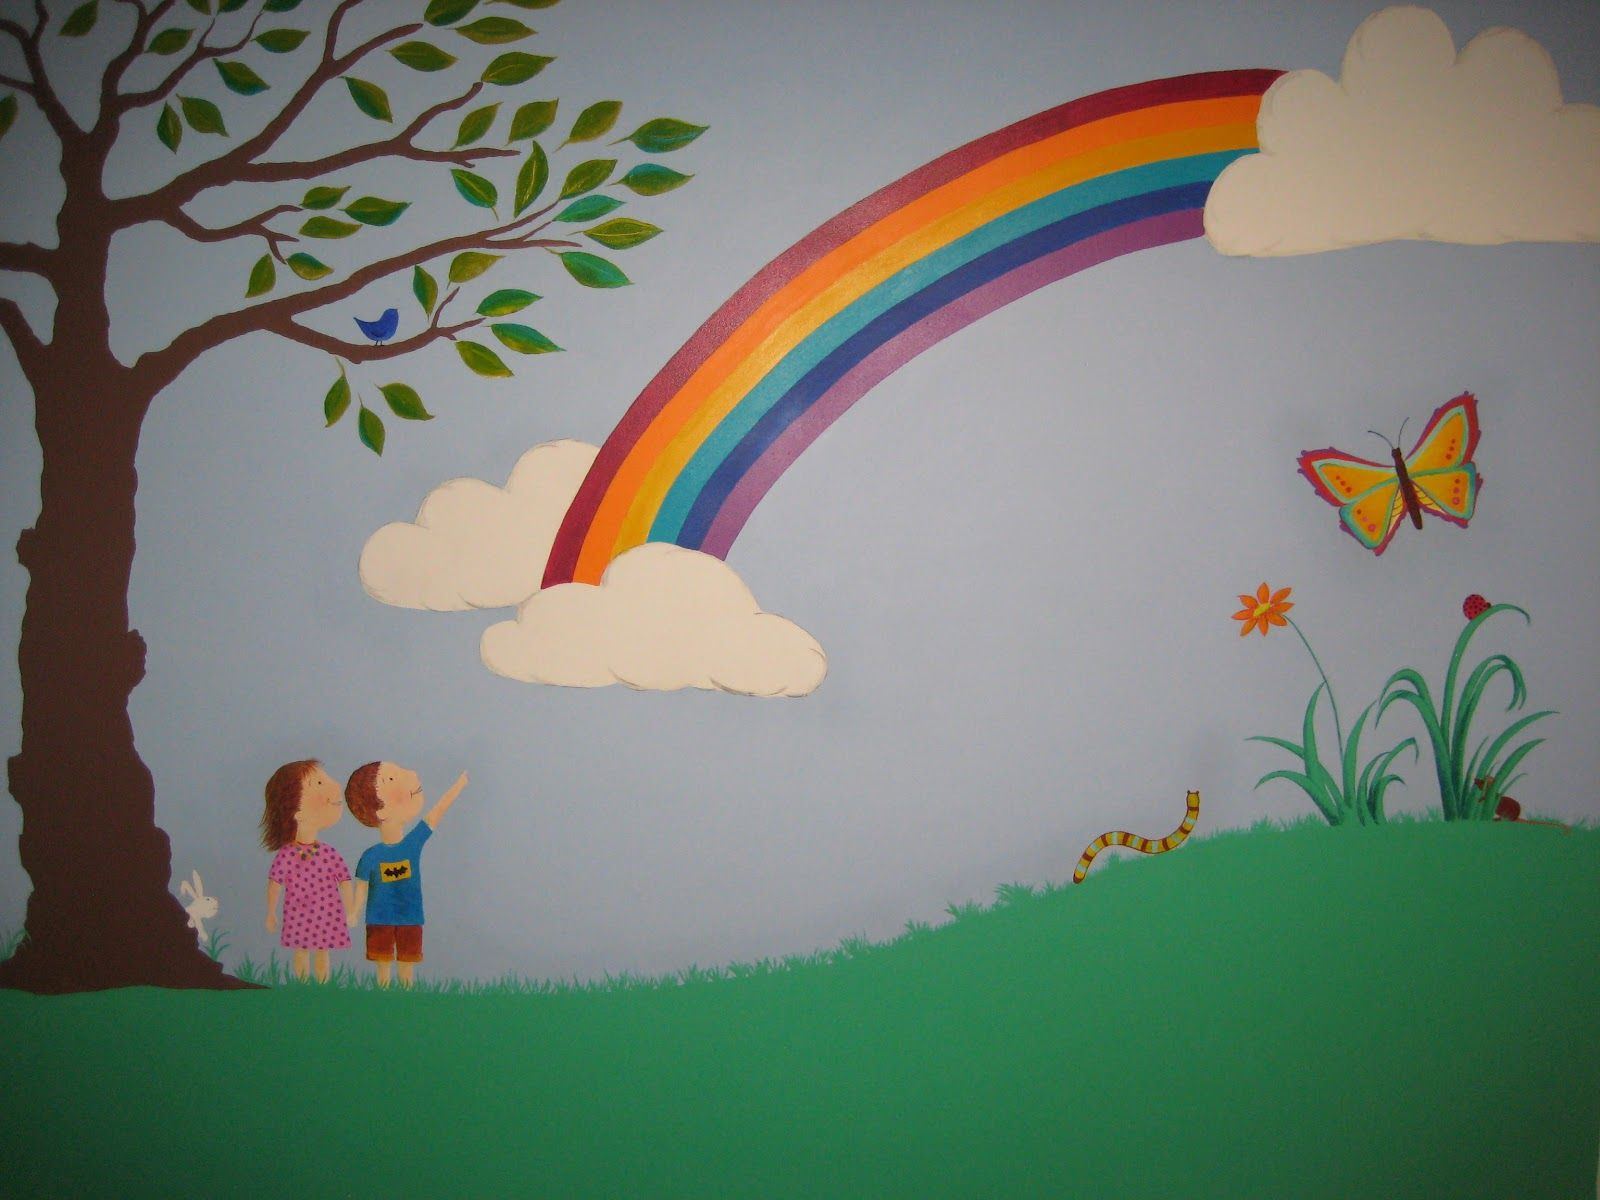 Rainbow Kids Rooms Rainbow Bedroom Ideas Crafty Little People Our